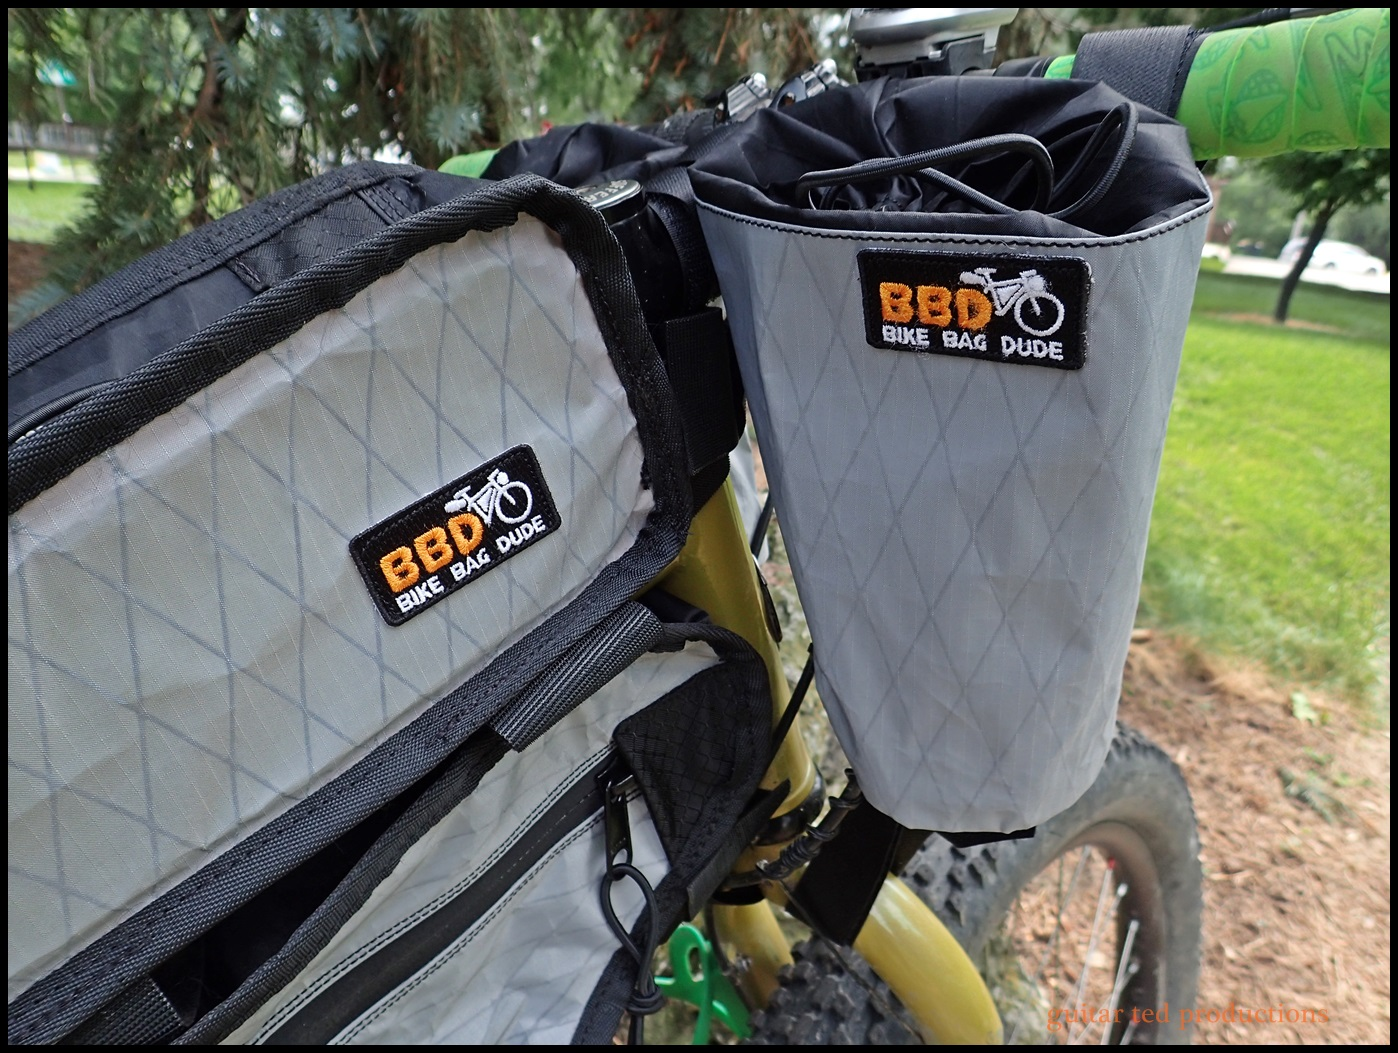 The Top Bag And Chaff All Bbd Bags Come With These Nice Embroidered Patches